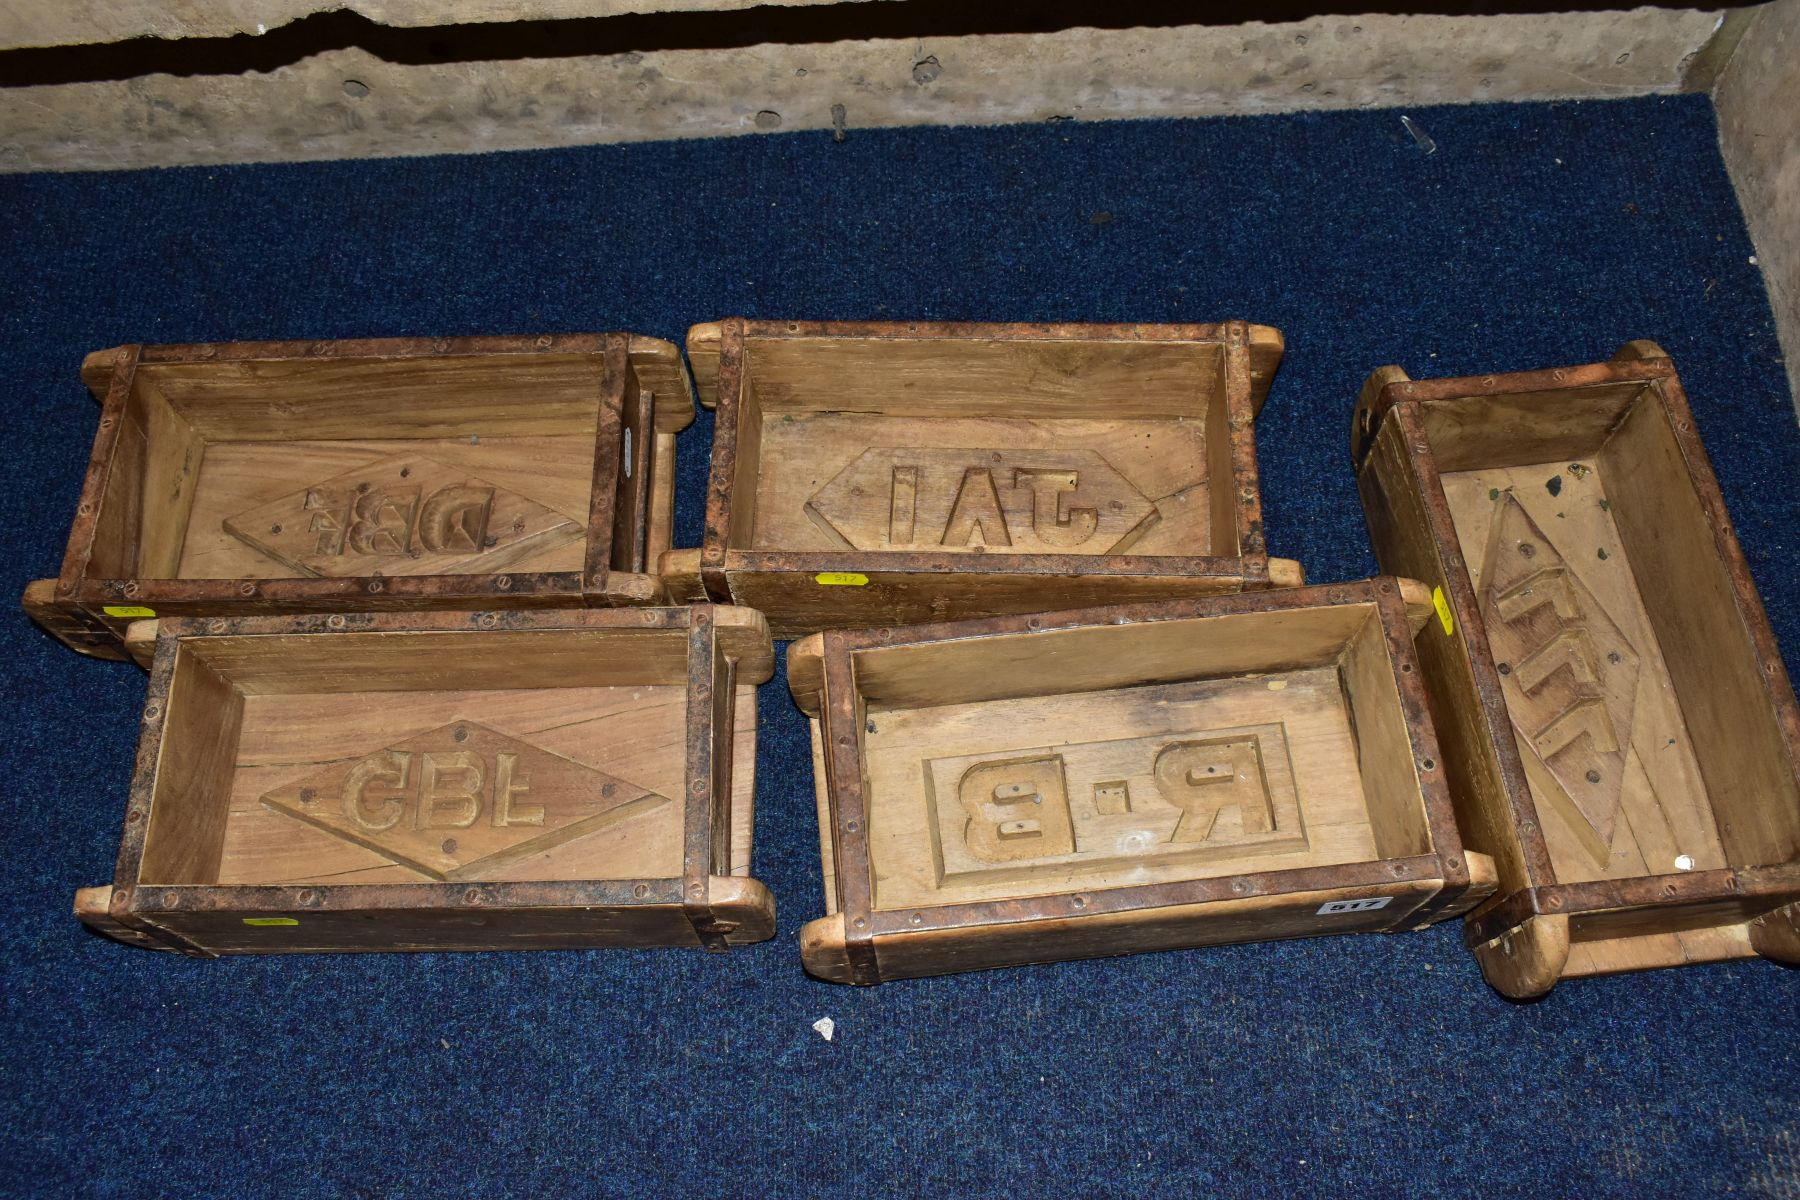 FIVE WOODEN AND METAL BOUND BRICKMAKERS MOULDS, all five with initials/numbers to the interiors,